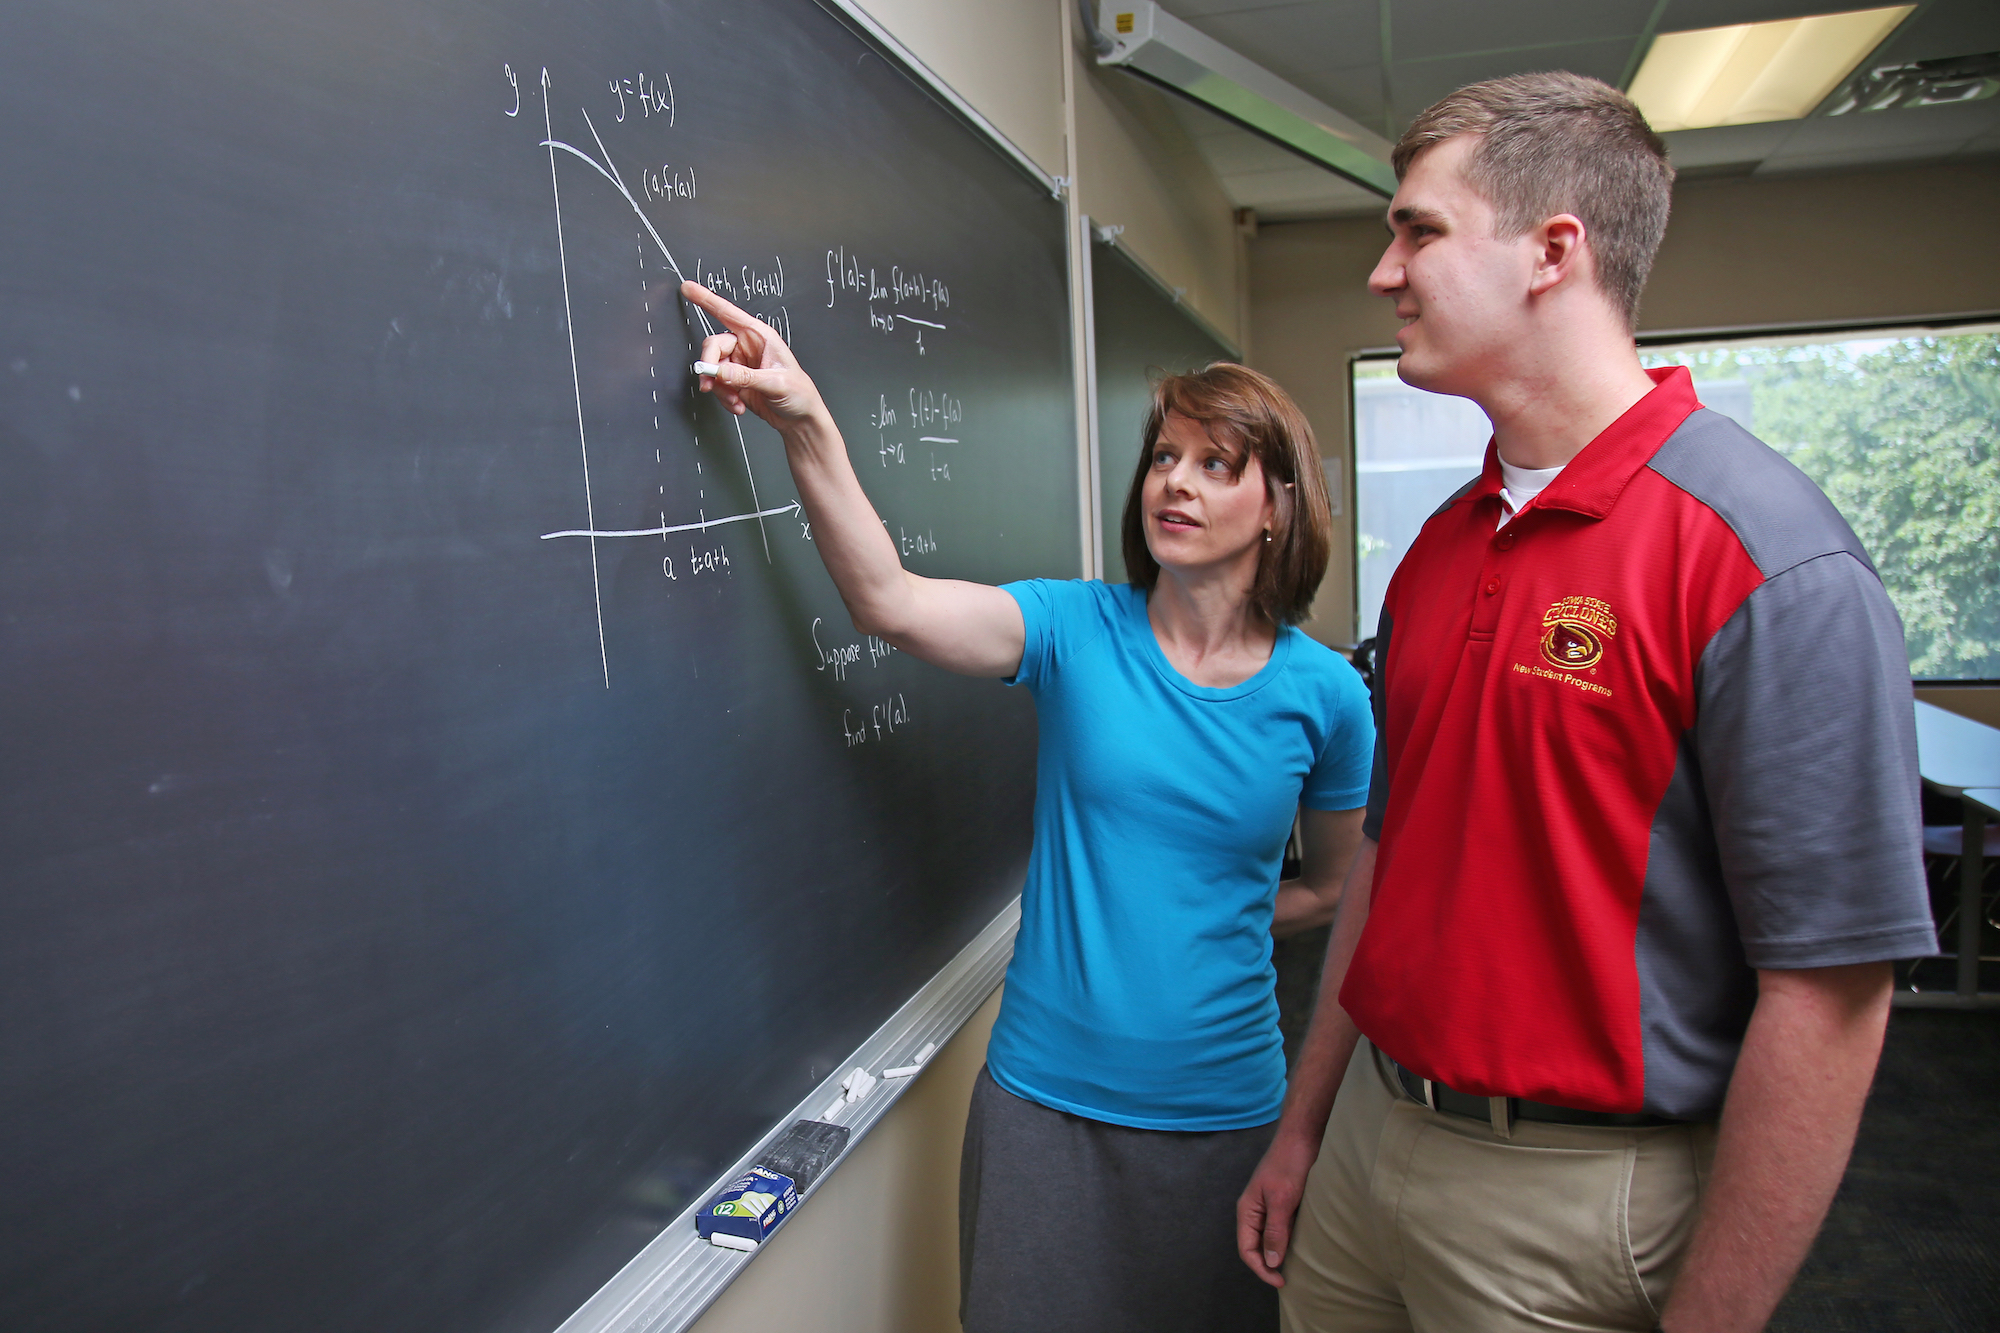 Heather Bolles, senior lecturer in mathematics, stands at a blackboard with a student, explaining the definition of derivative at a point of the graph.